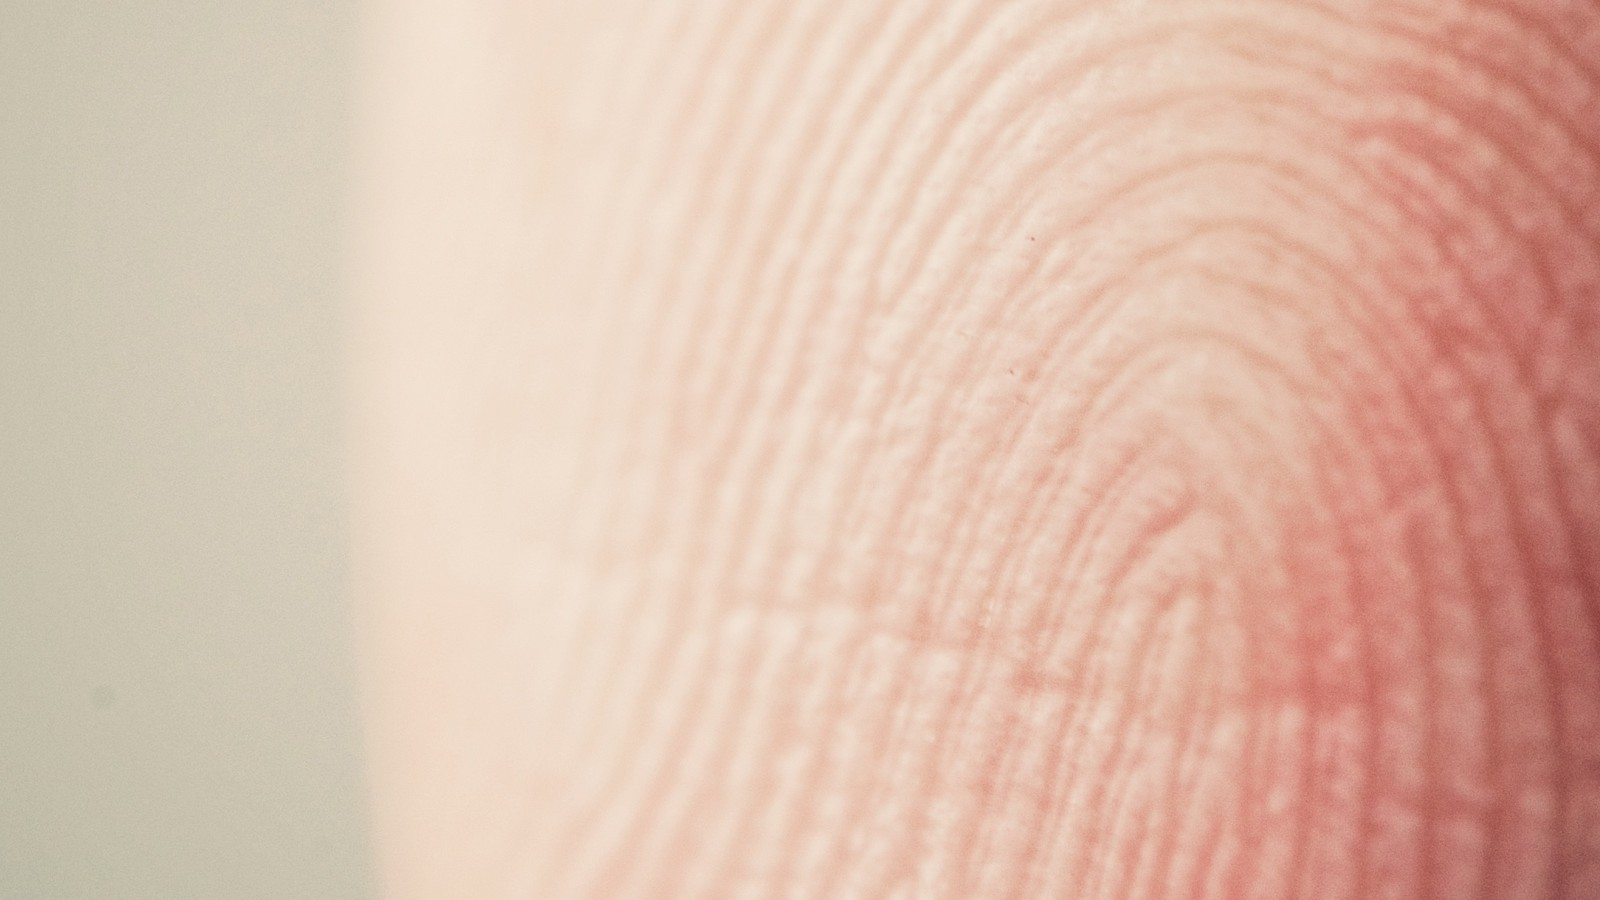 Your Fingerprint Is All Someone Needs to Know You Used Cocaine